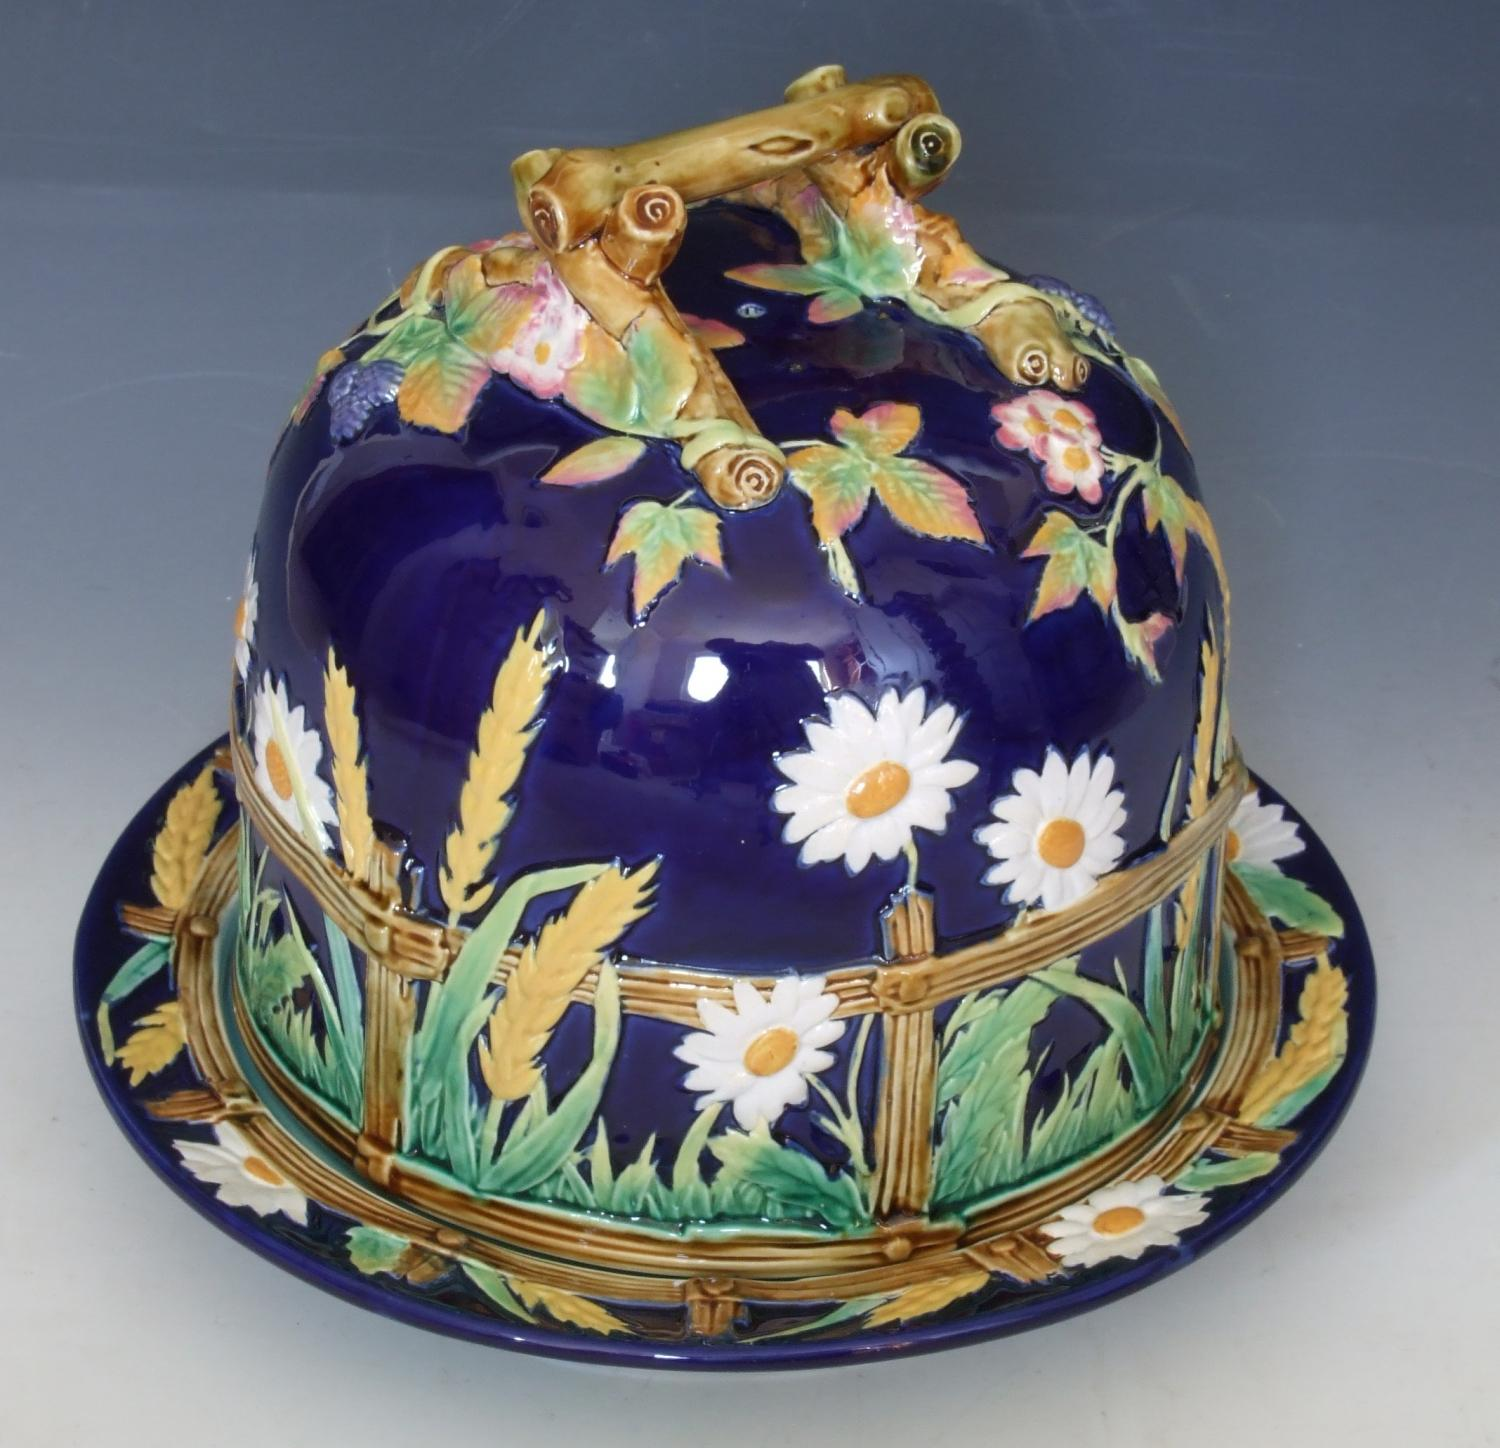 George Jones 'daisy' majolica cheese dish